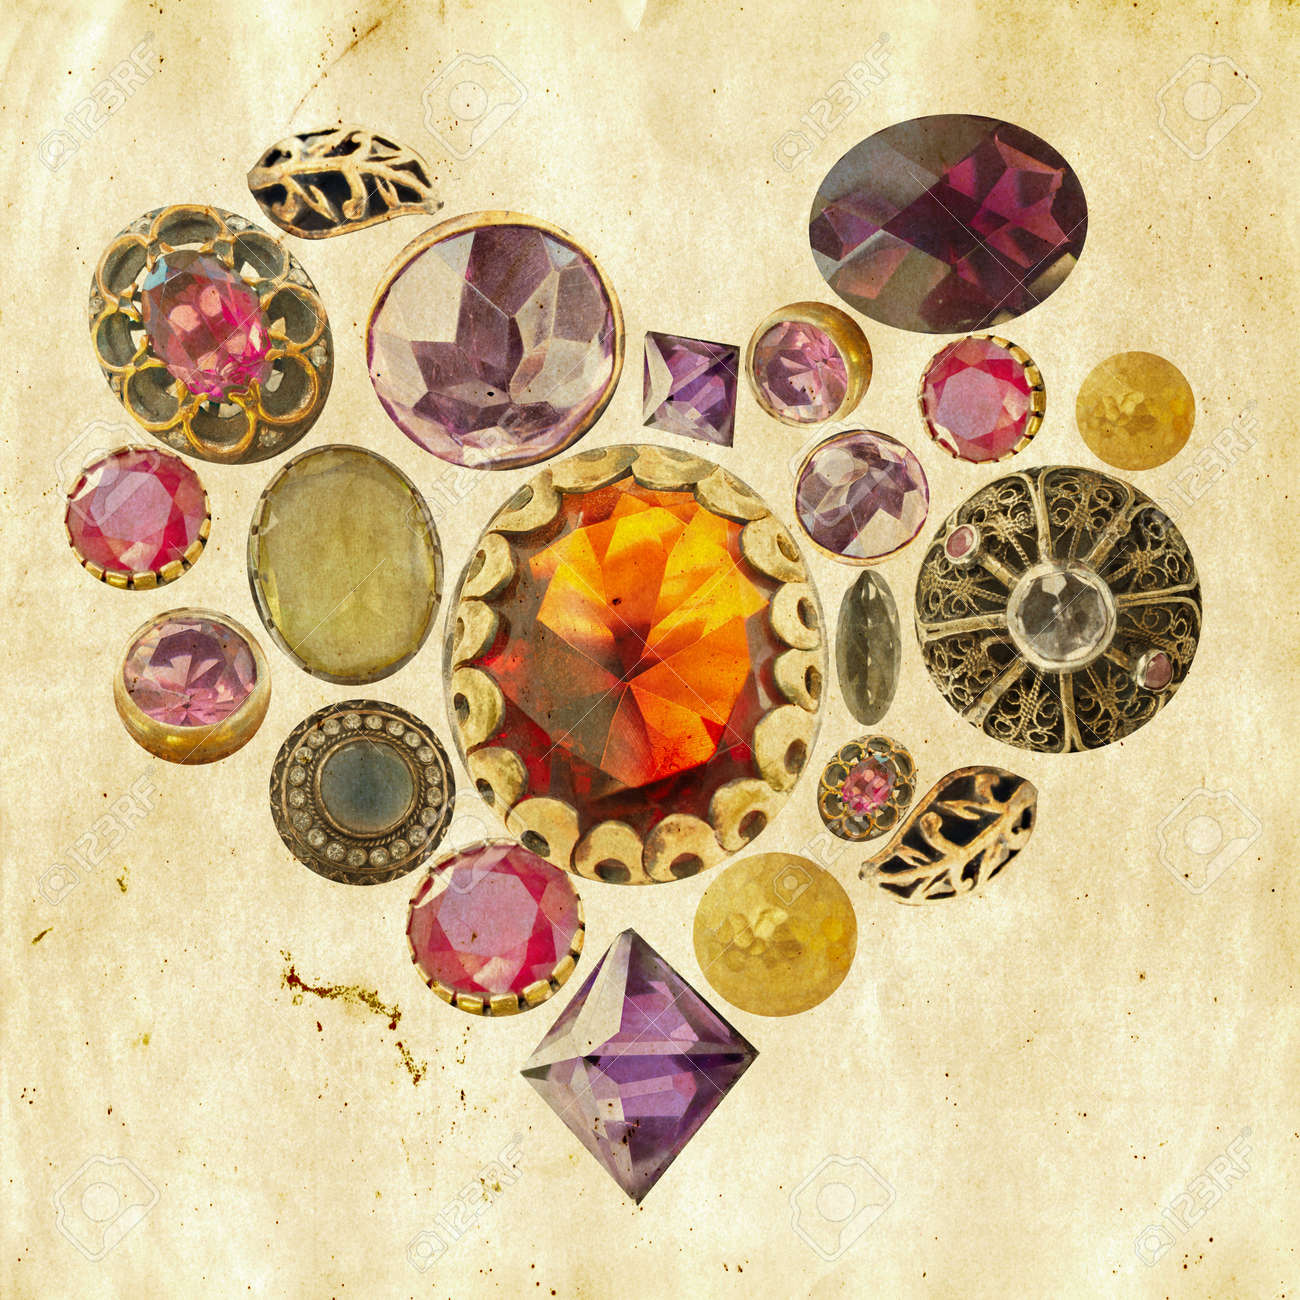 gems and precious stones arranged in heart shape on grunge paper background Stock Photo - 8744667